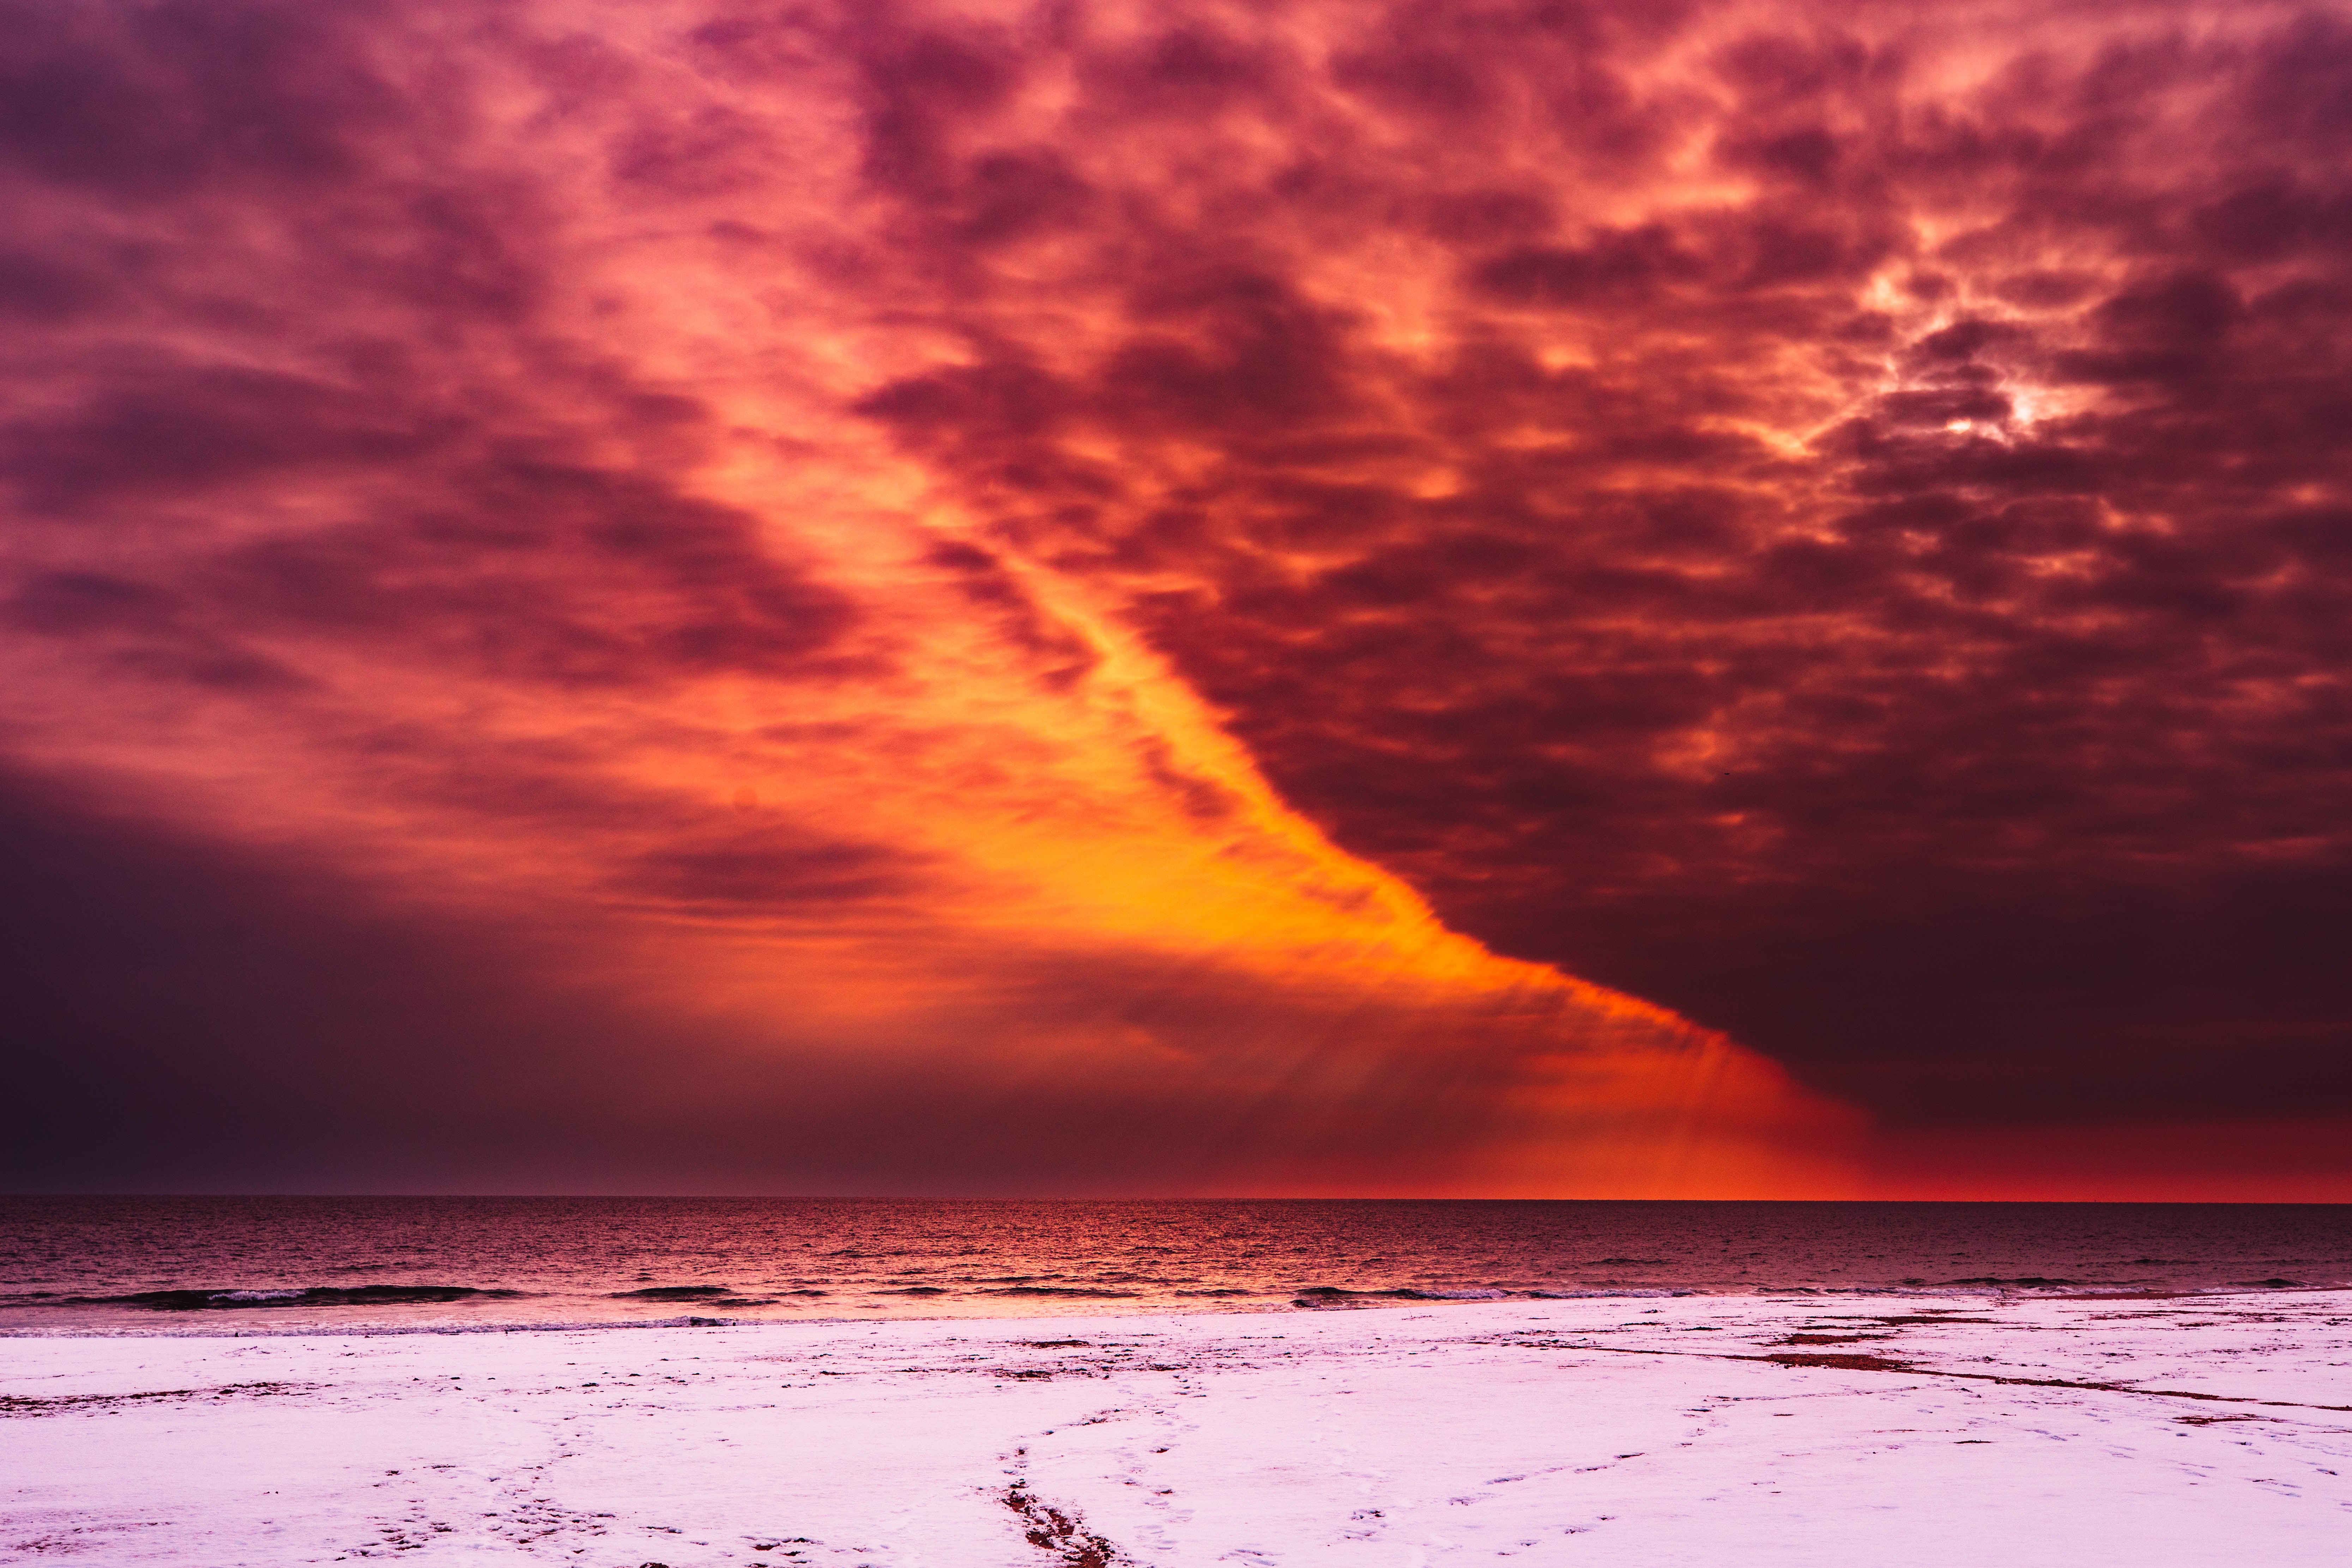 sea and red sky during daytime